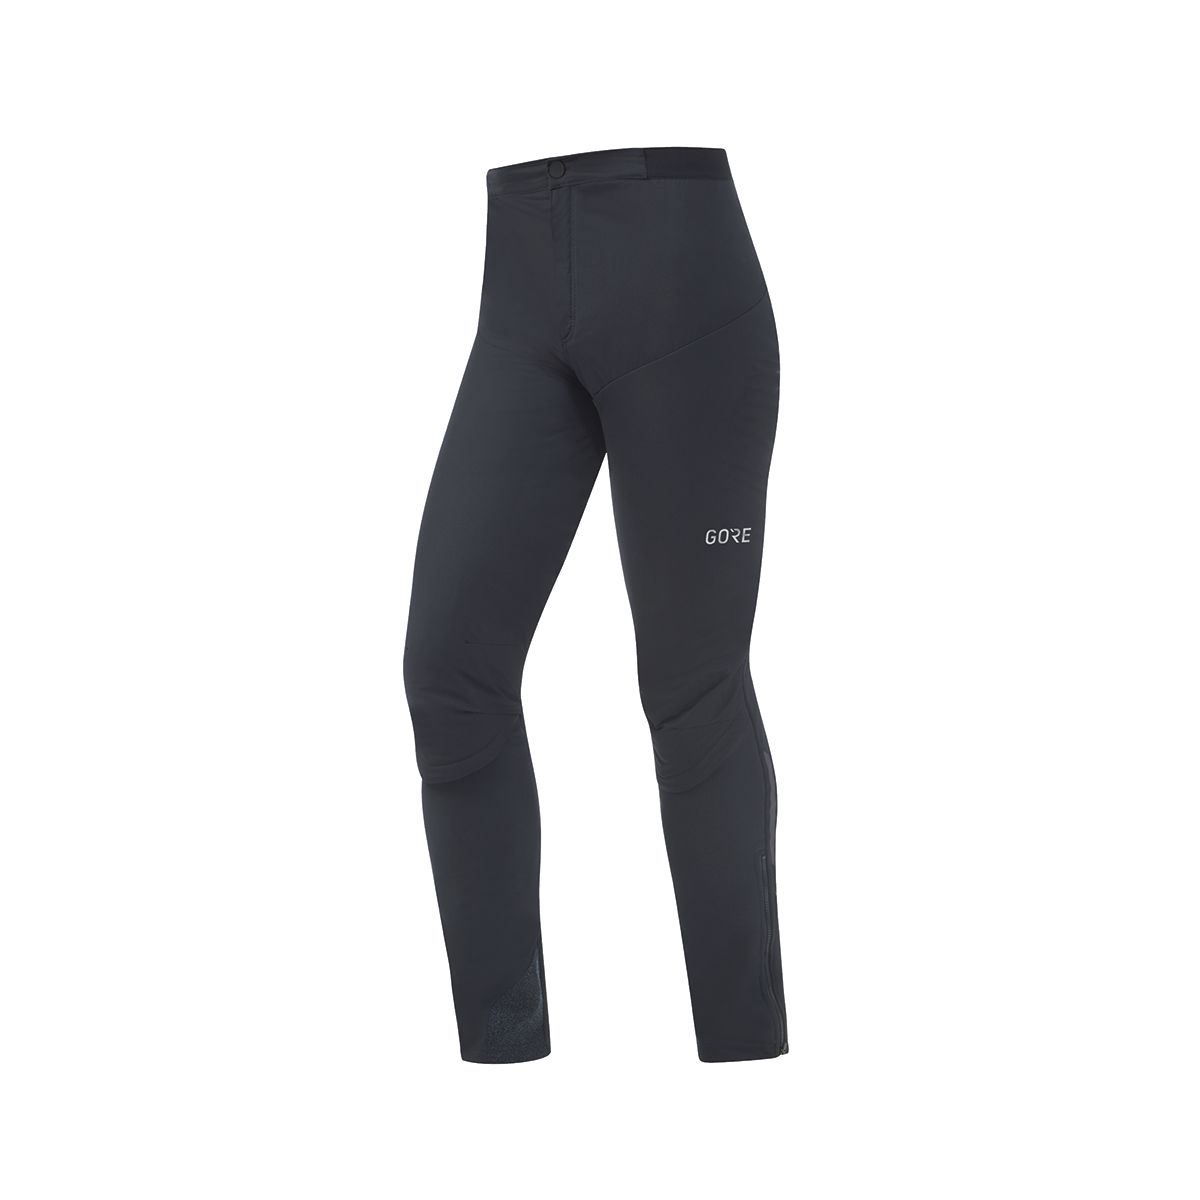 C7 GORE WINDSTOPPER INSULATED PANTS for men